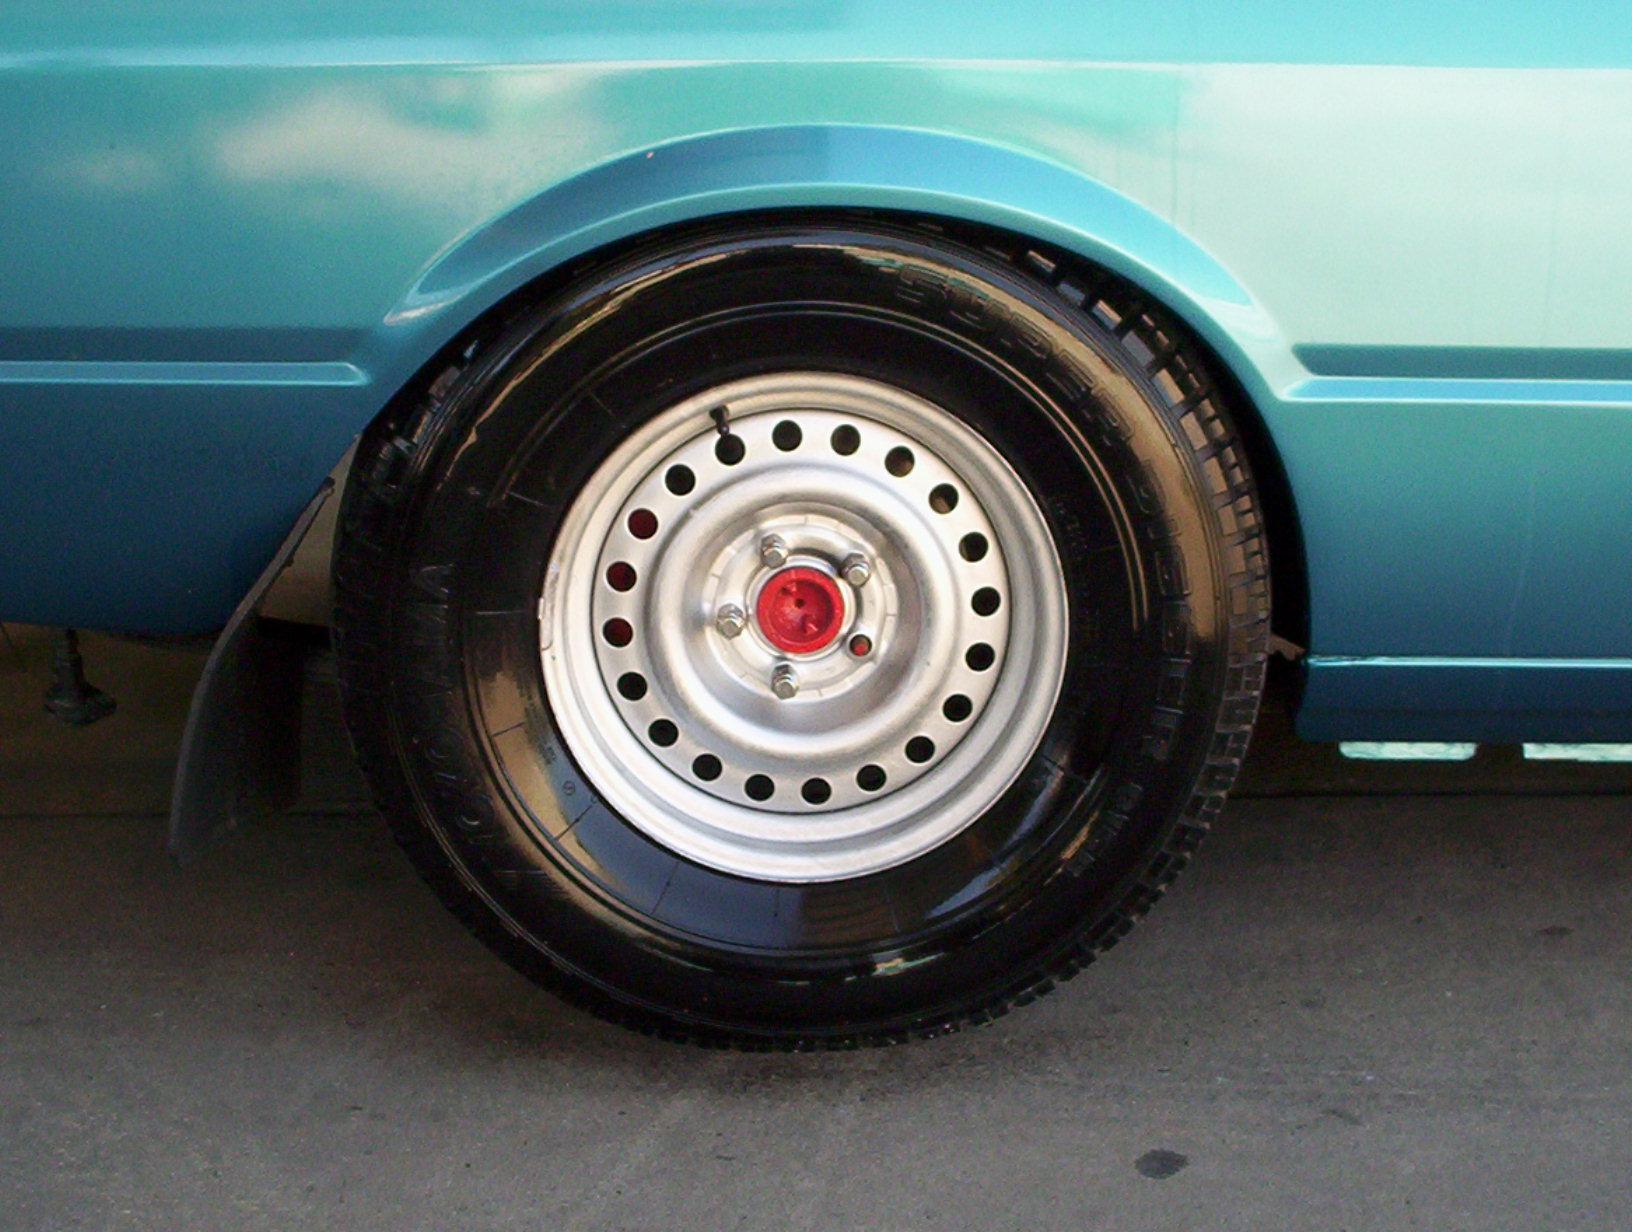 Nathans XF Ute with big tyres on 265-70R15 001.jpg